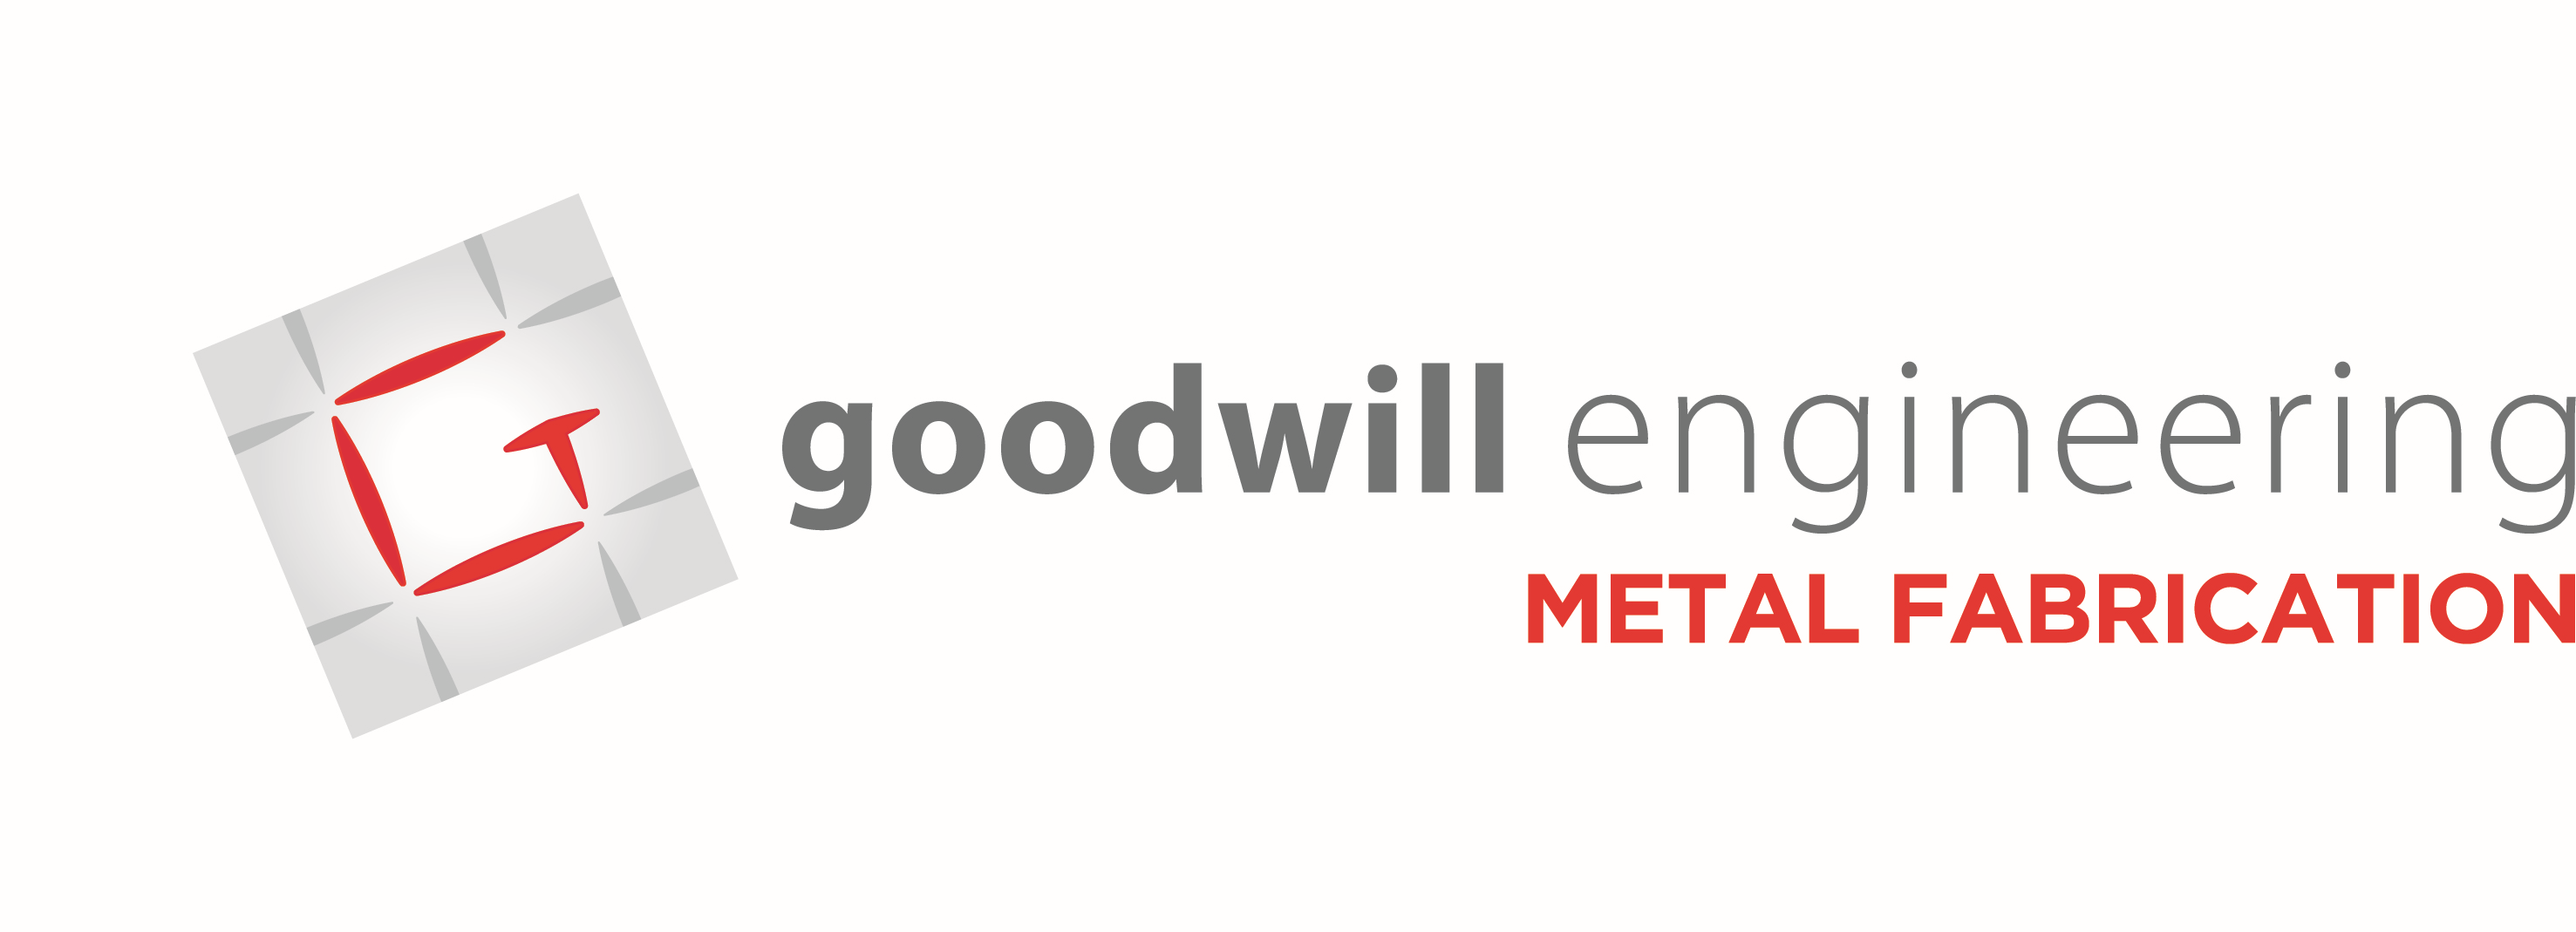 Goodwill Engineering